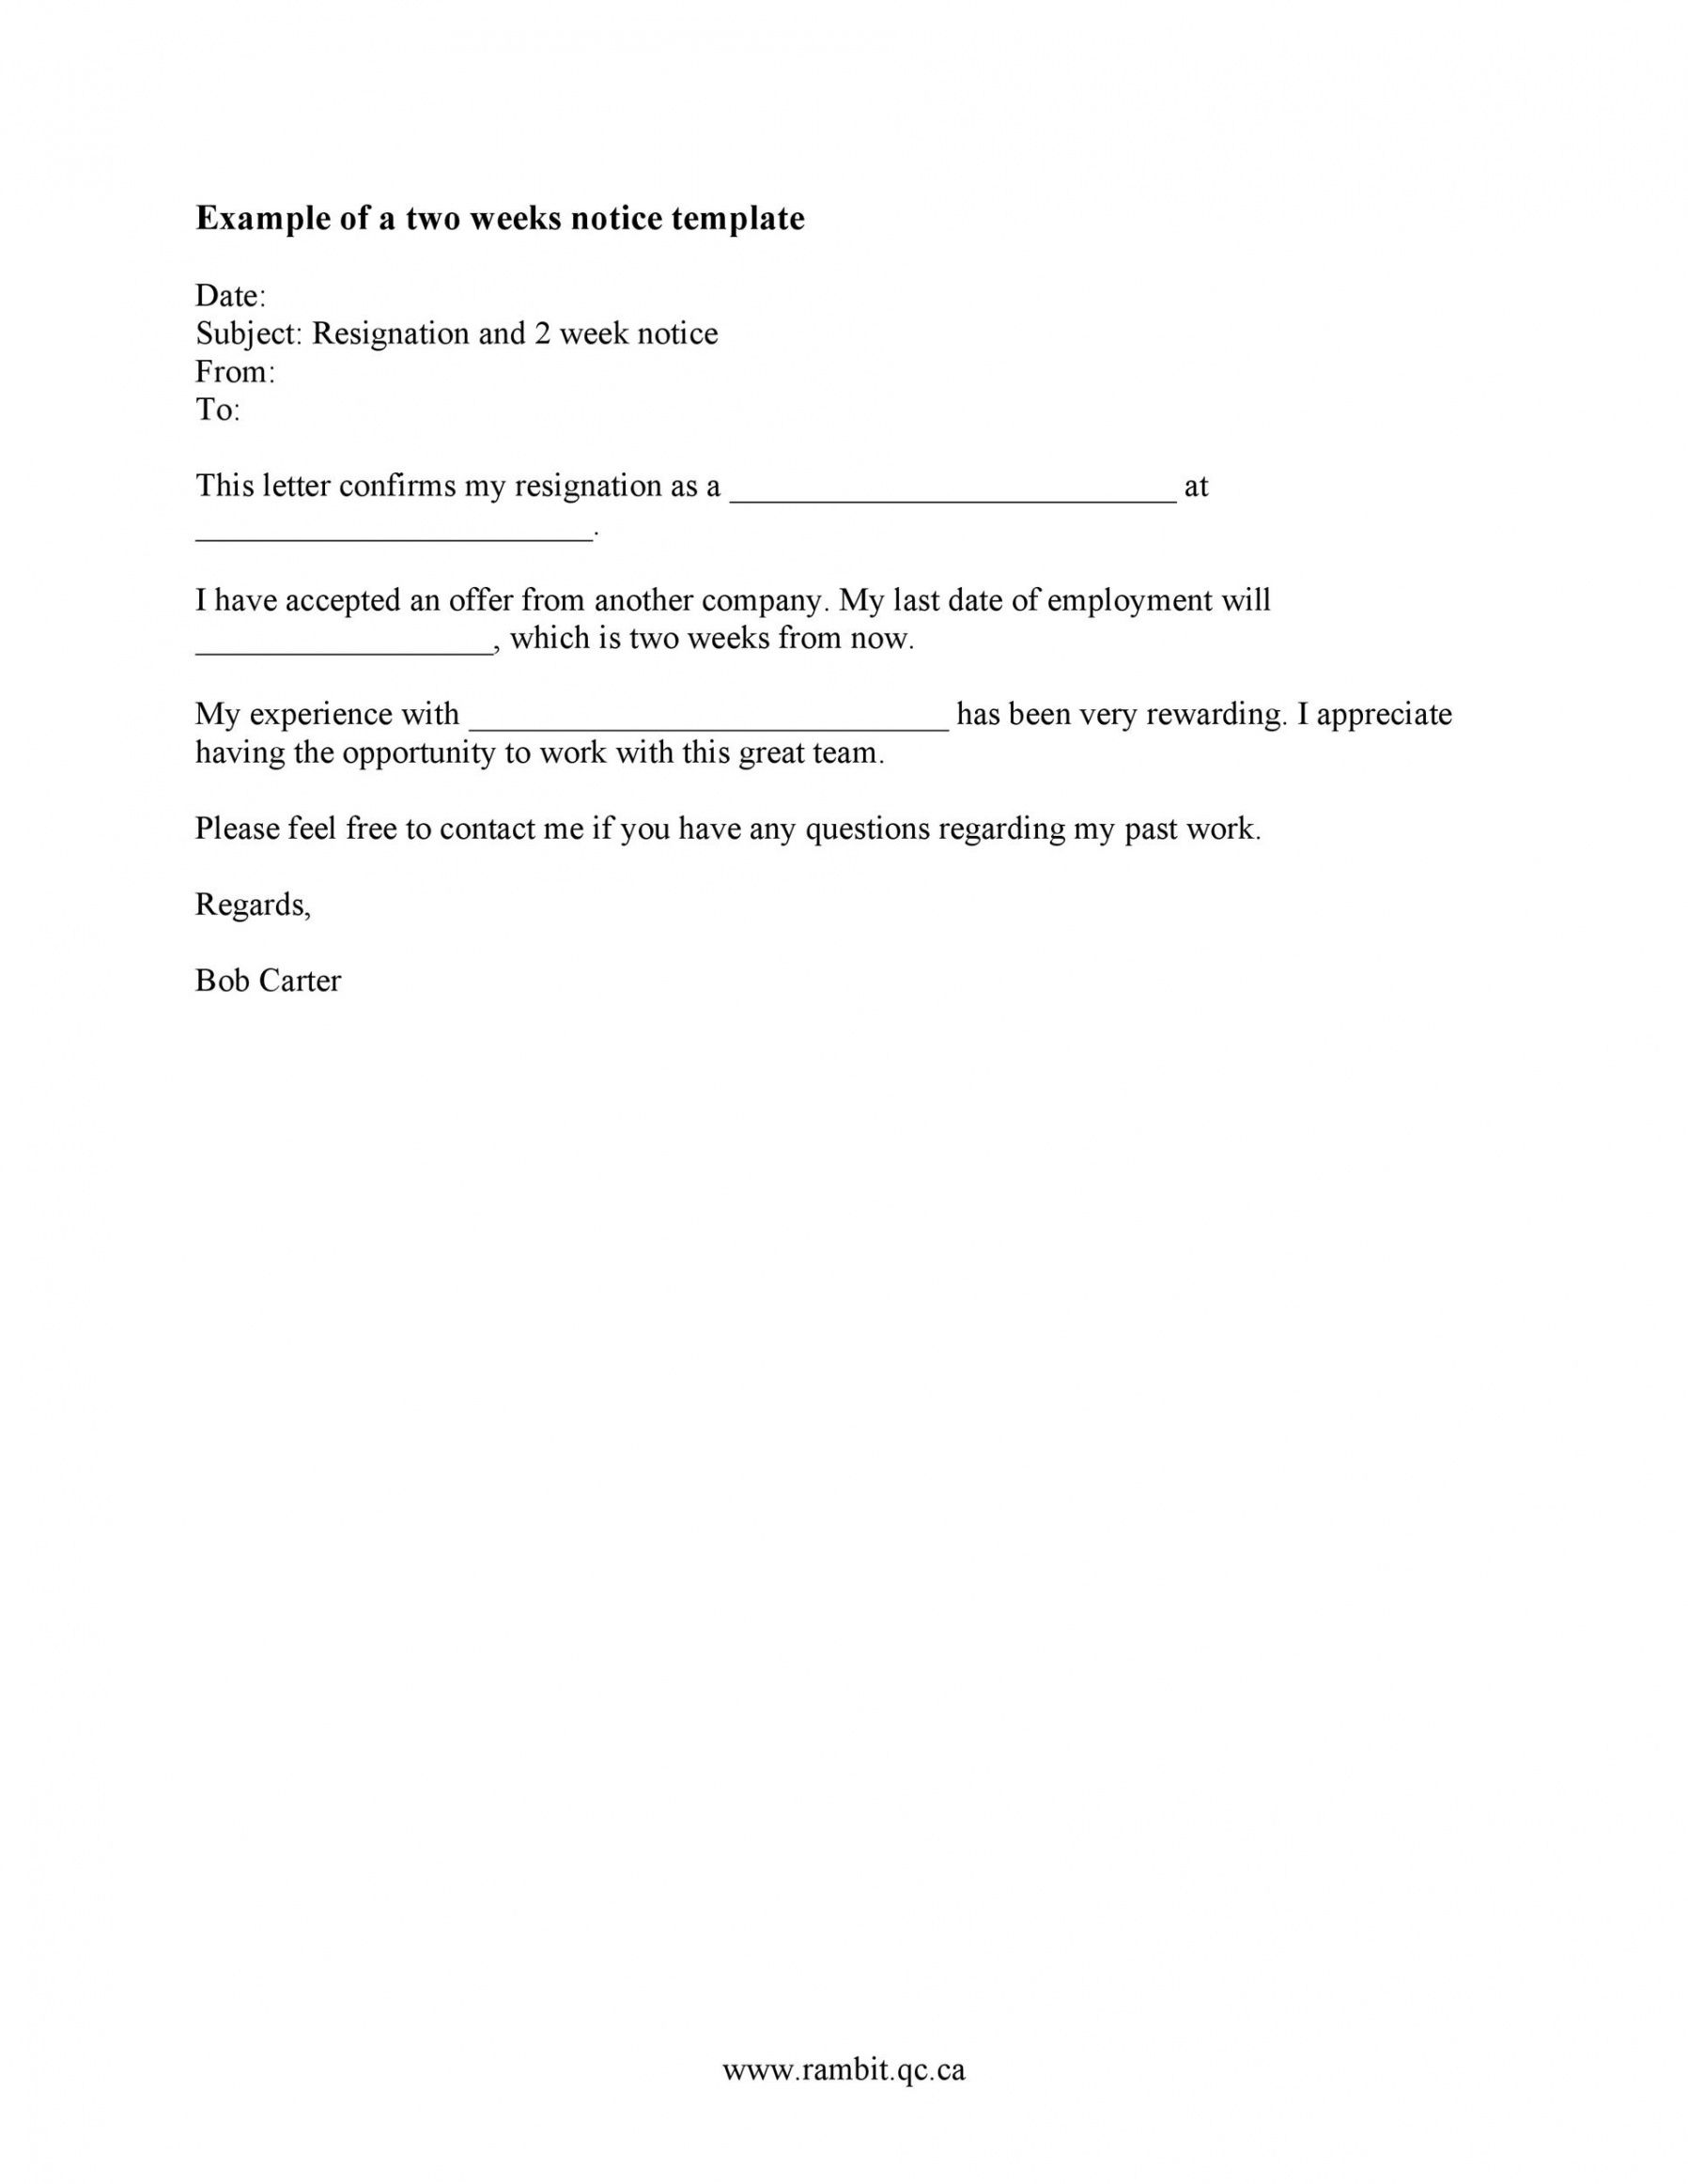 Best Two Weeks Notice Email Template Word Example In 2021 Letter Template Word Letter Templates Letter Example 2 weeks notice email template